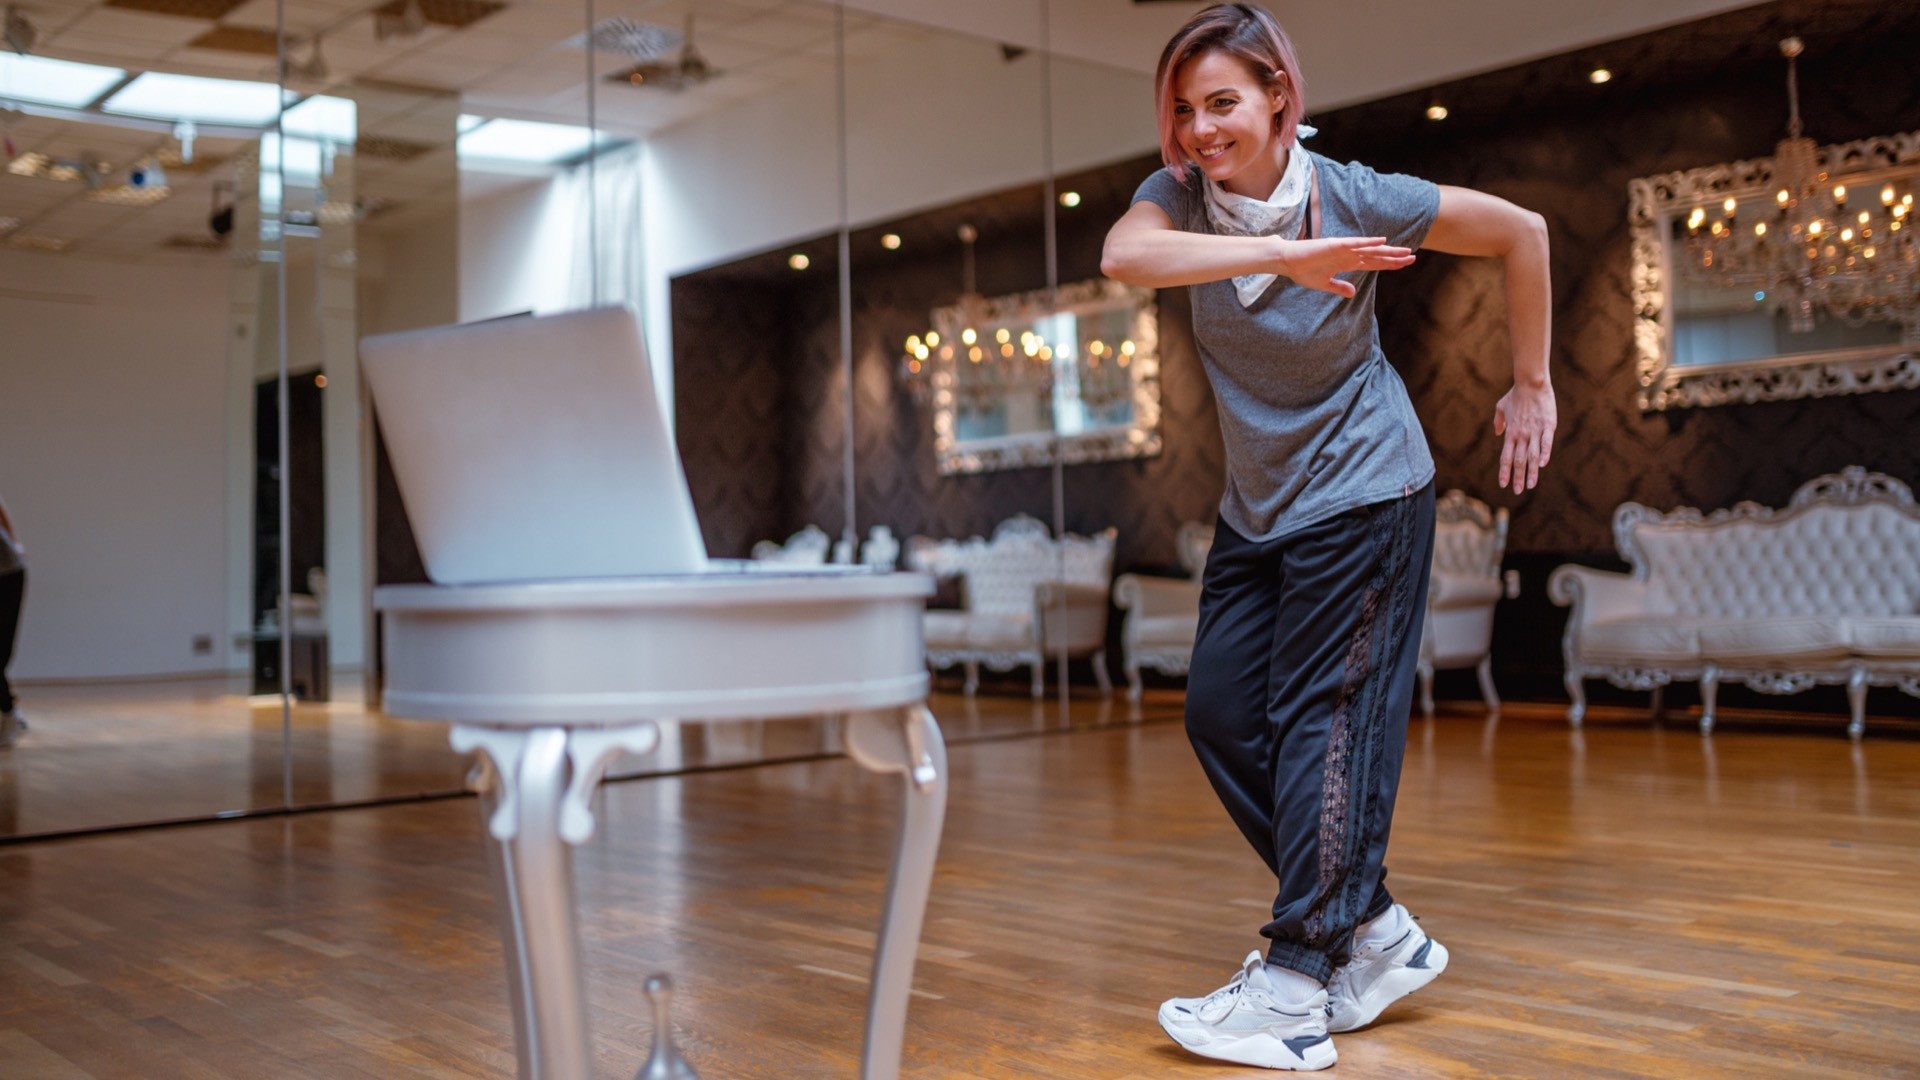 Hip hop instructor leading virtual classes in Baltimore